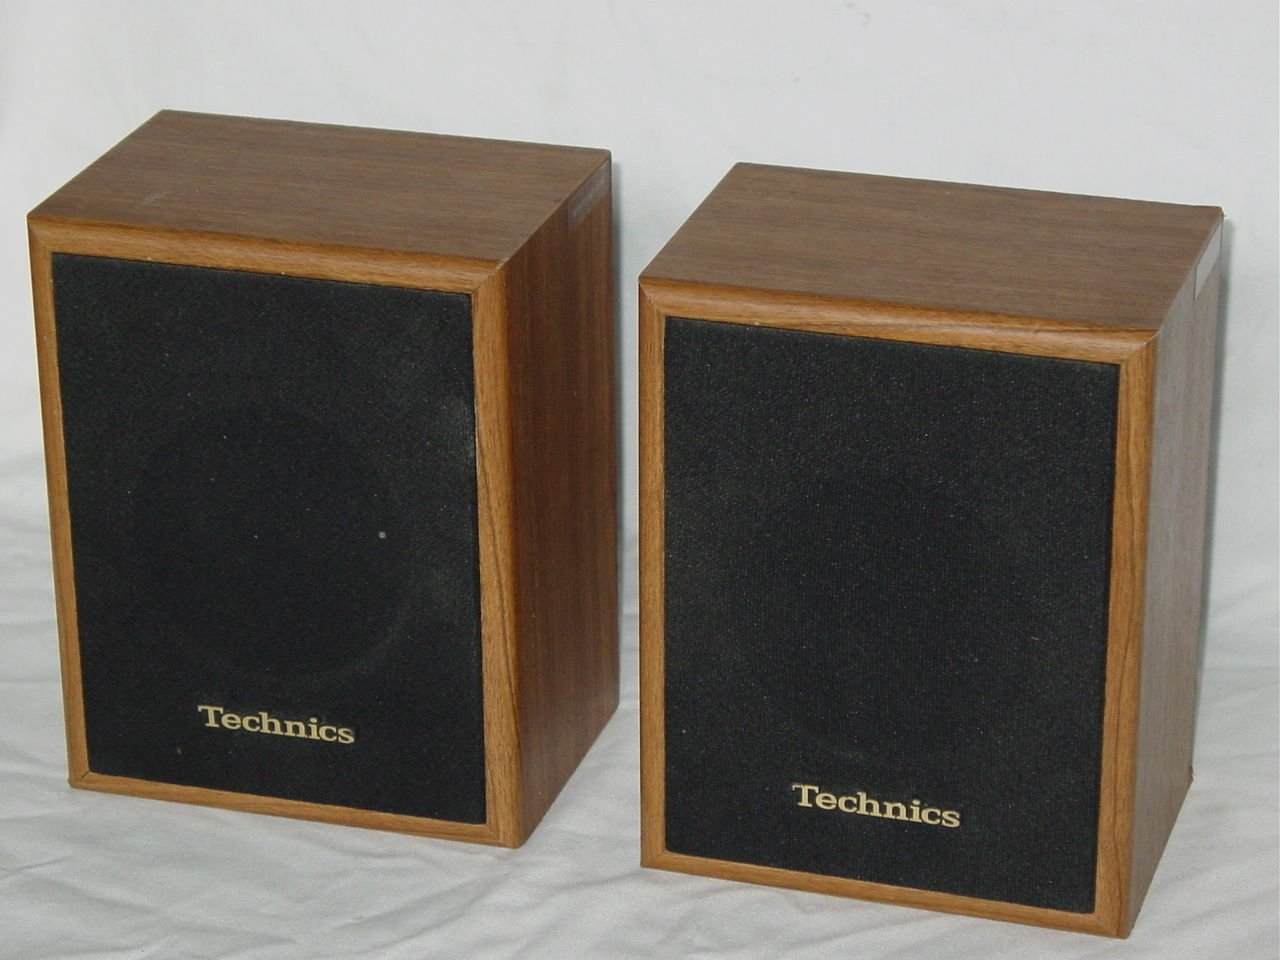 Technics SB-S15 Surround Speaker System Pair w/ Simulated Wooden Cabinet